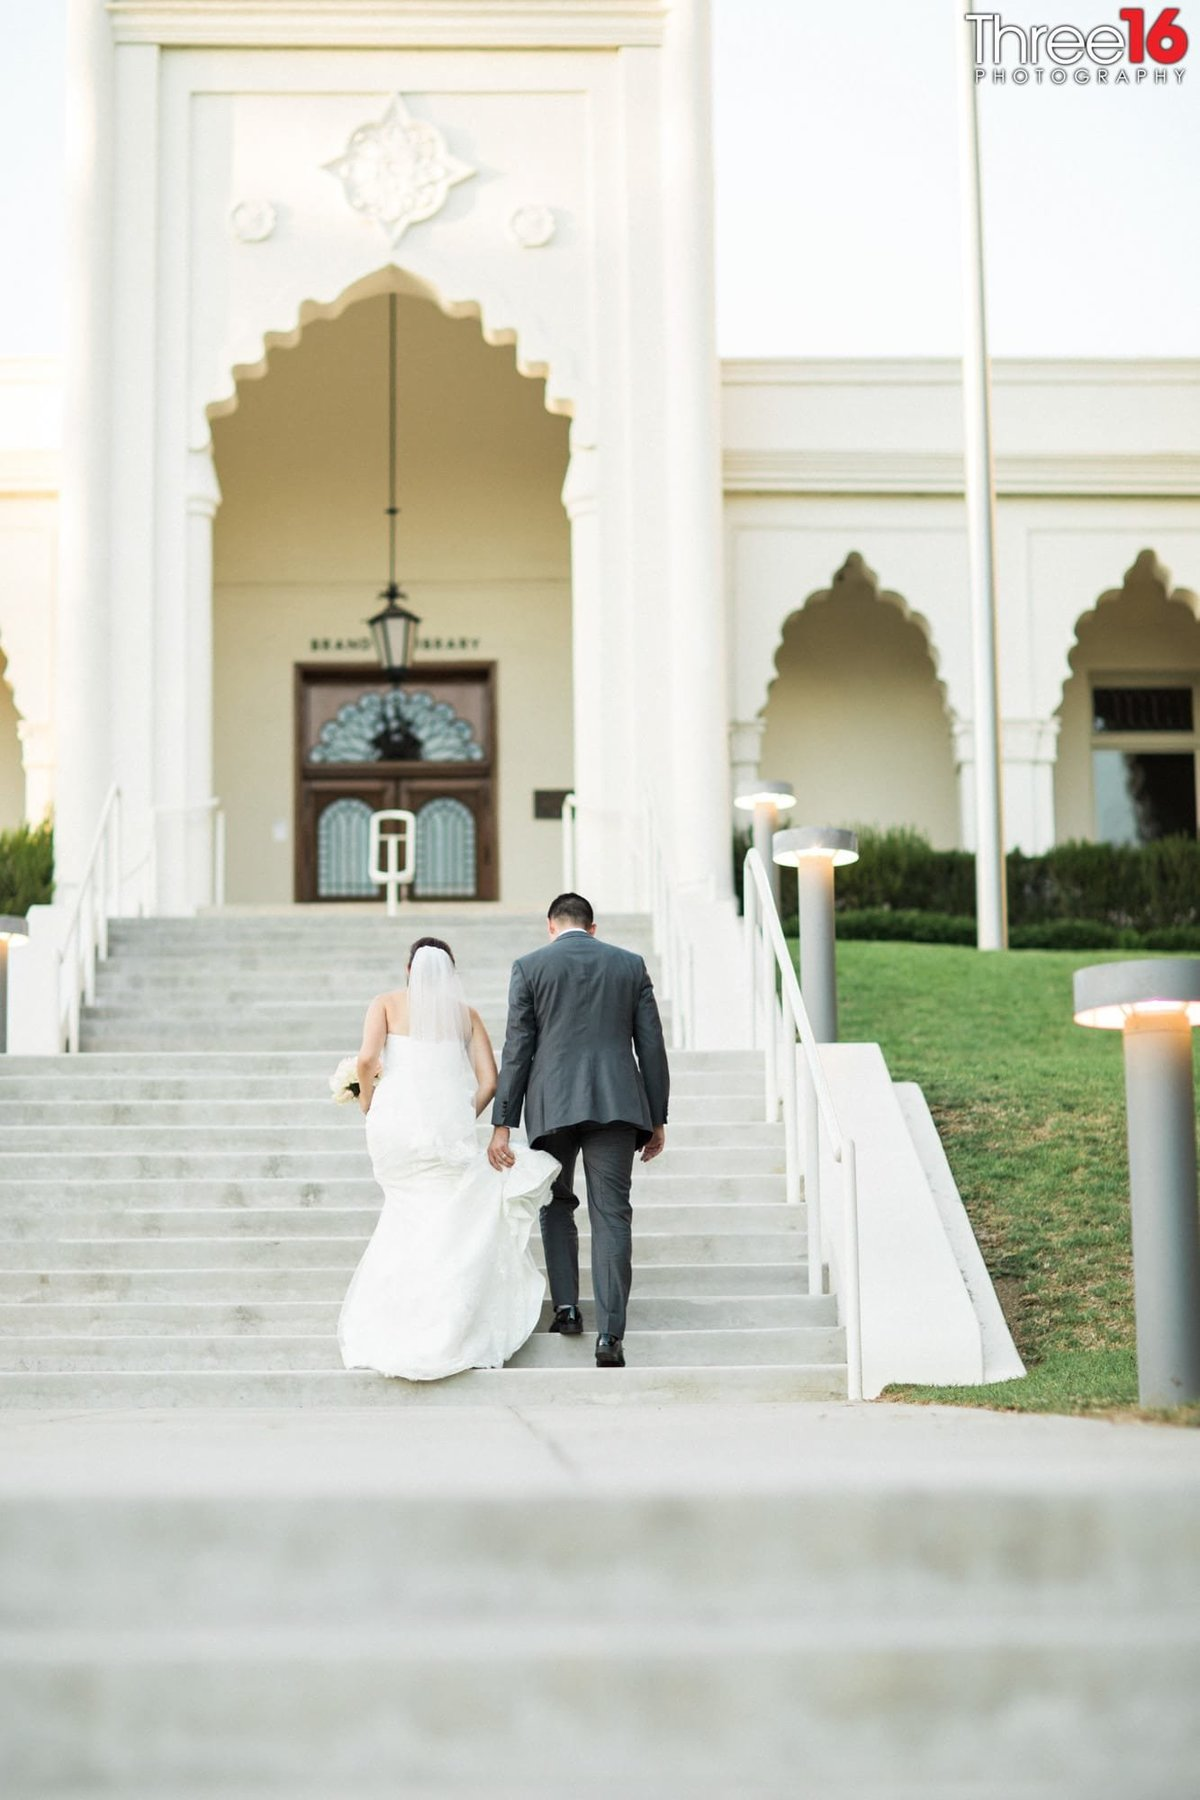 Brand Library Park Wedding in Glendale Photography_